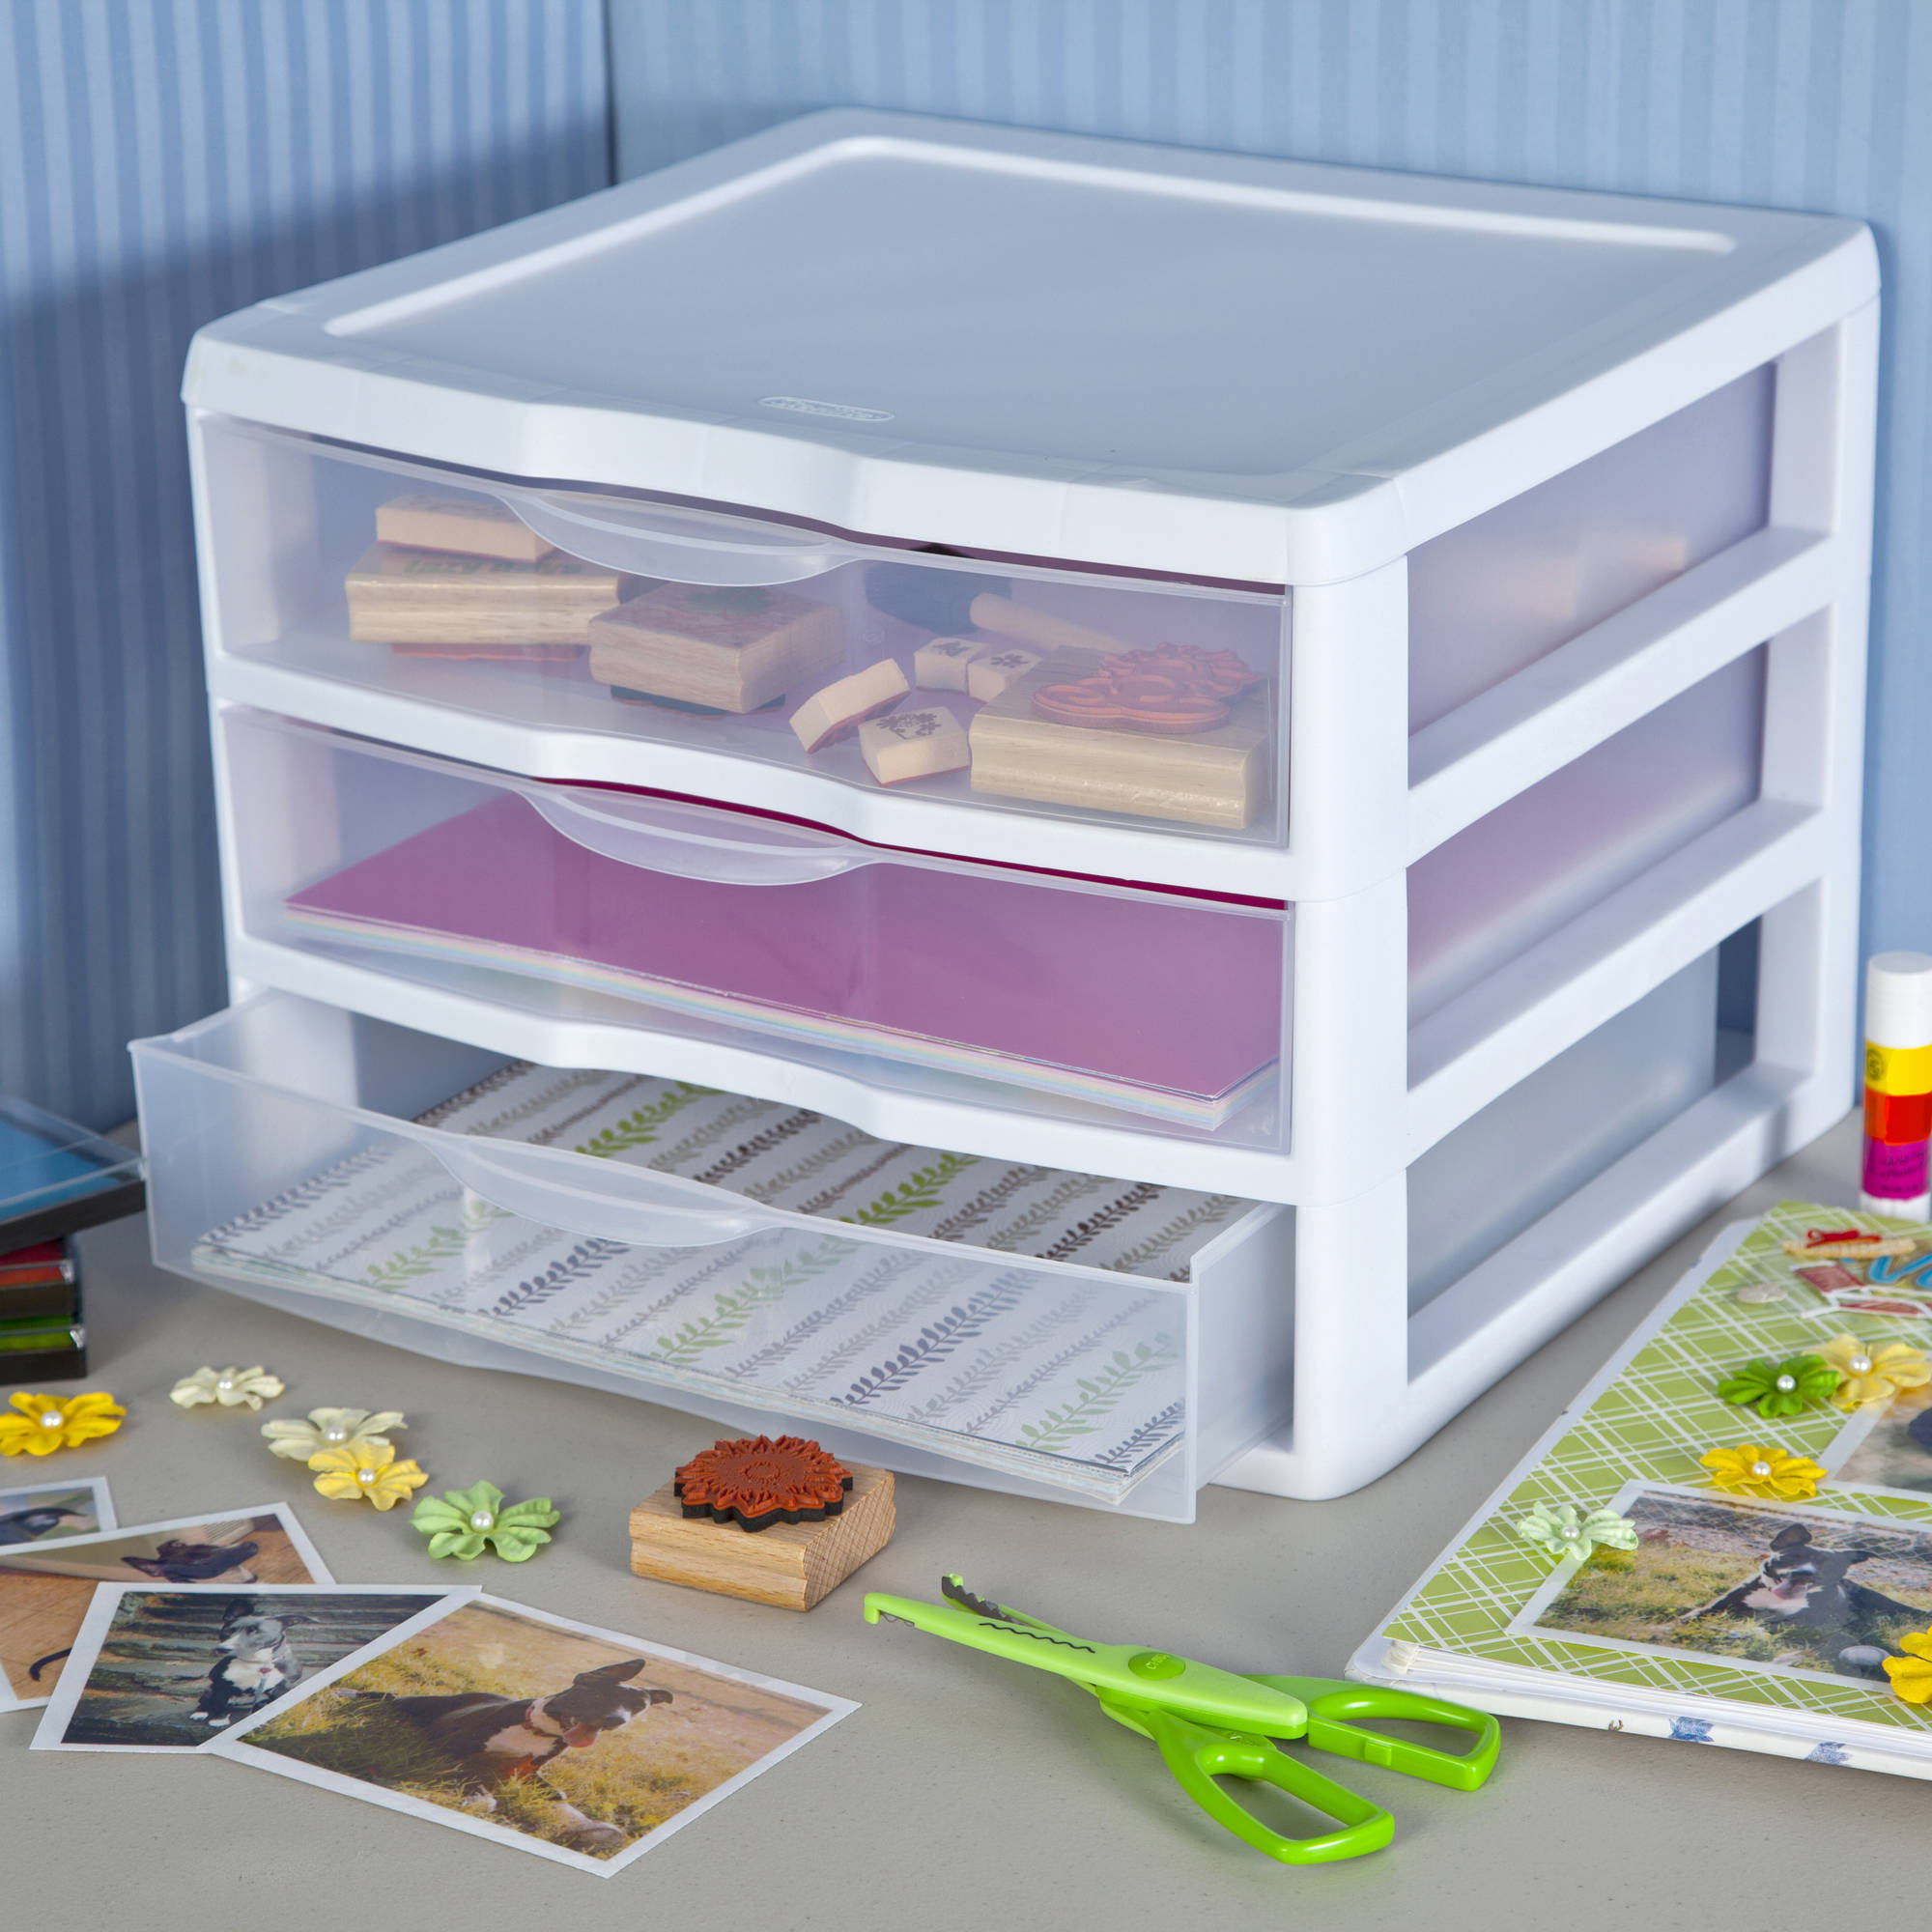 Sterilite Wide 3 Drawer Unit- White (Available in Case of 3 or Single Unit)